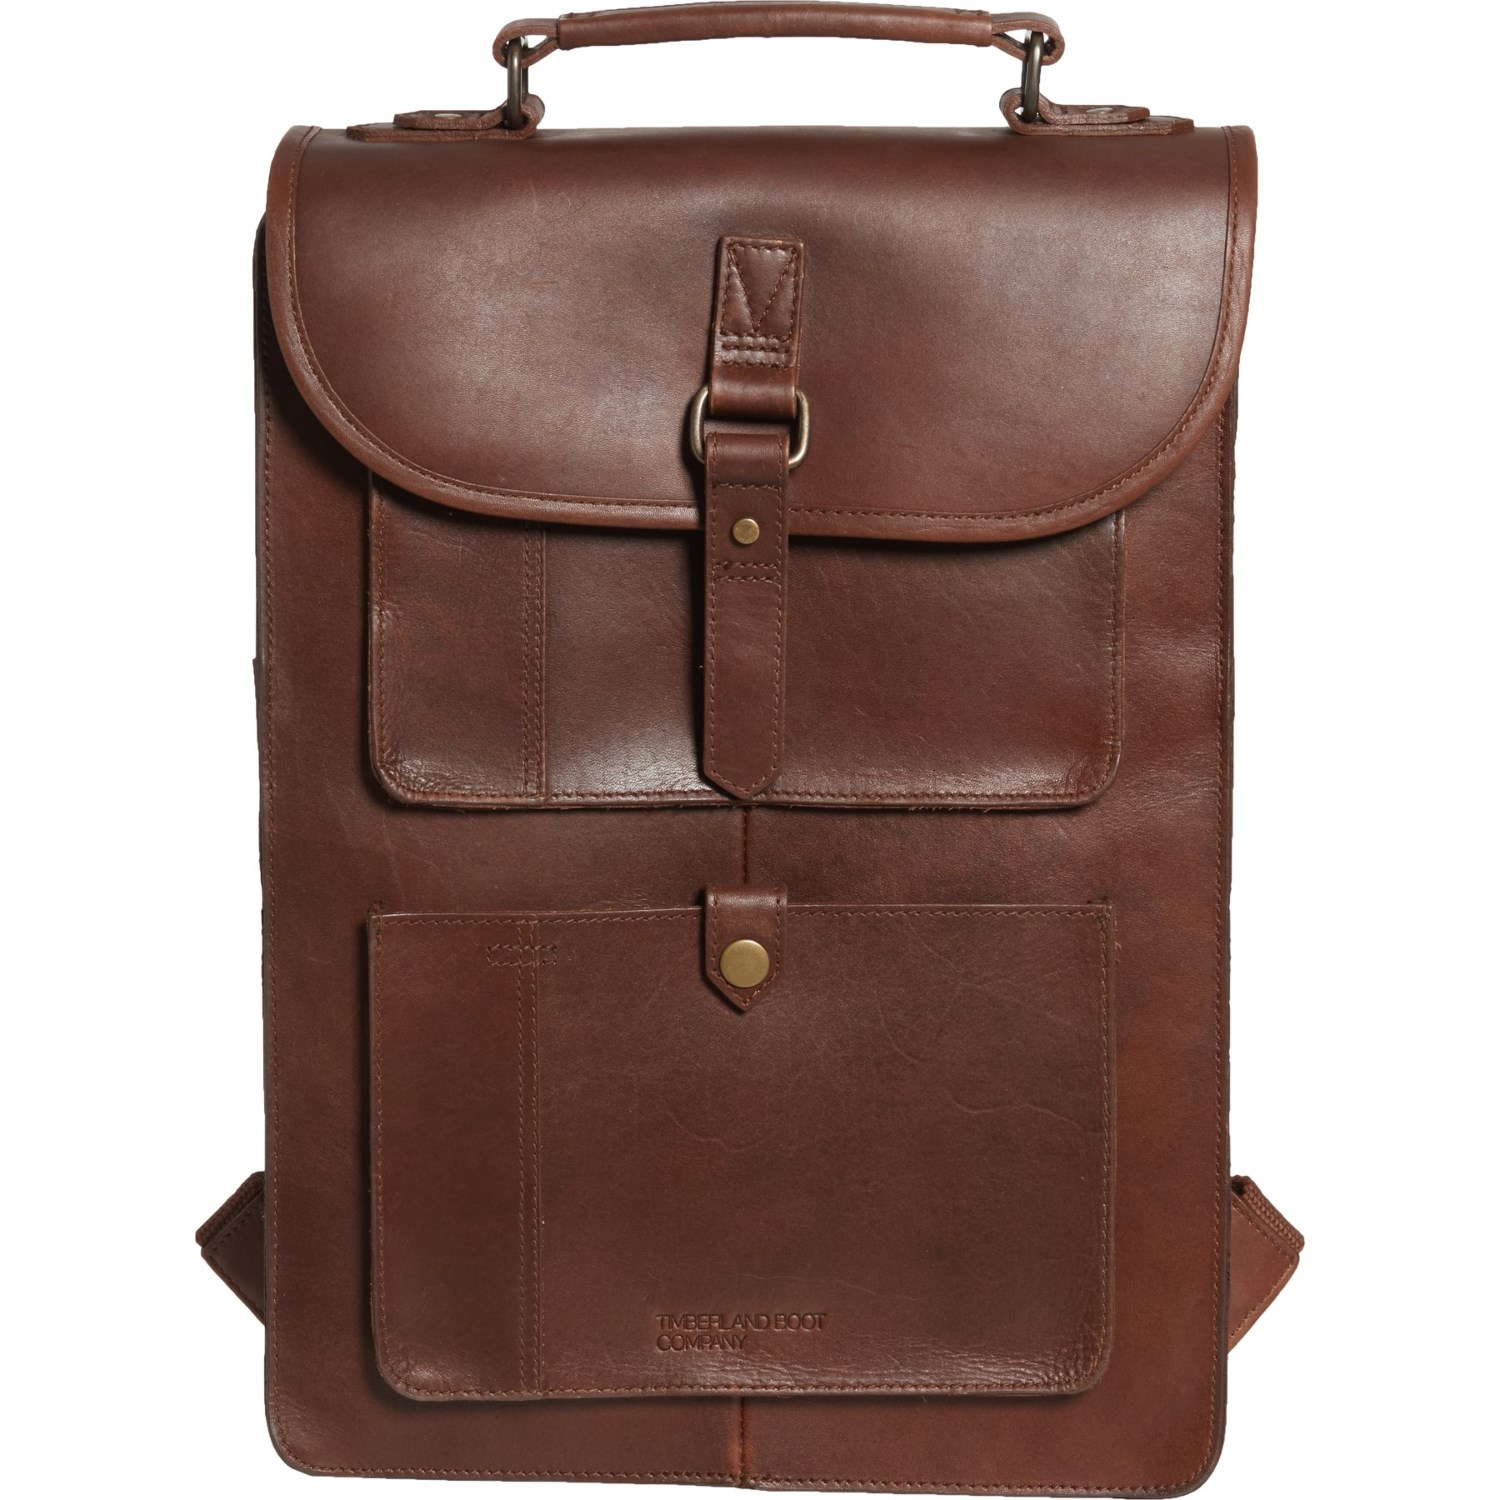 Timberland Made in India Lost History Backpack Leather (For Men)